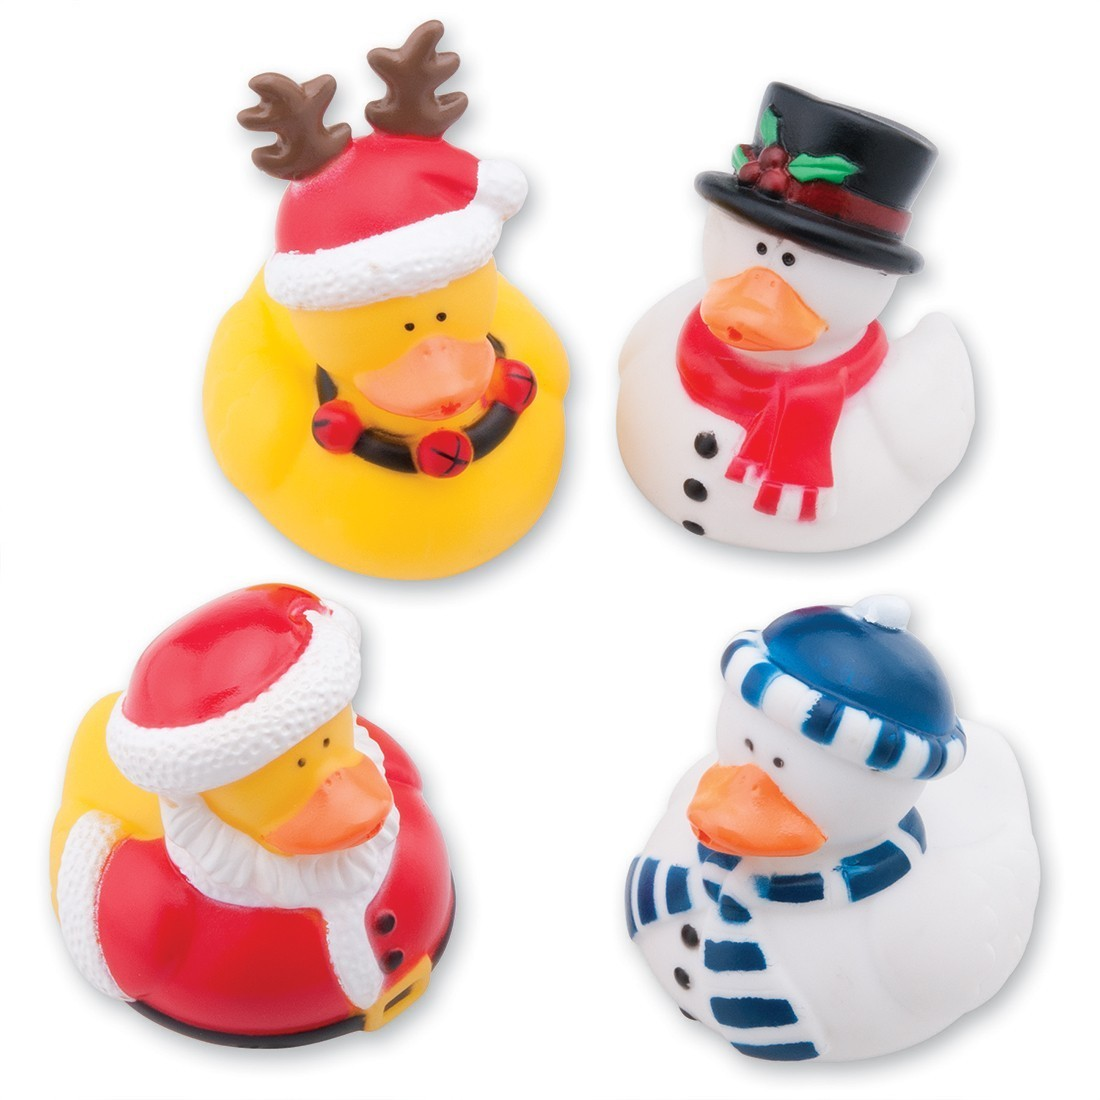 Holiday Rubber Ducks [image]